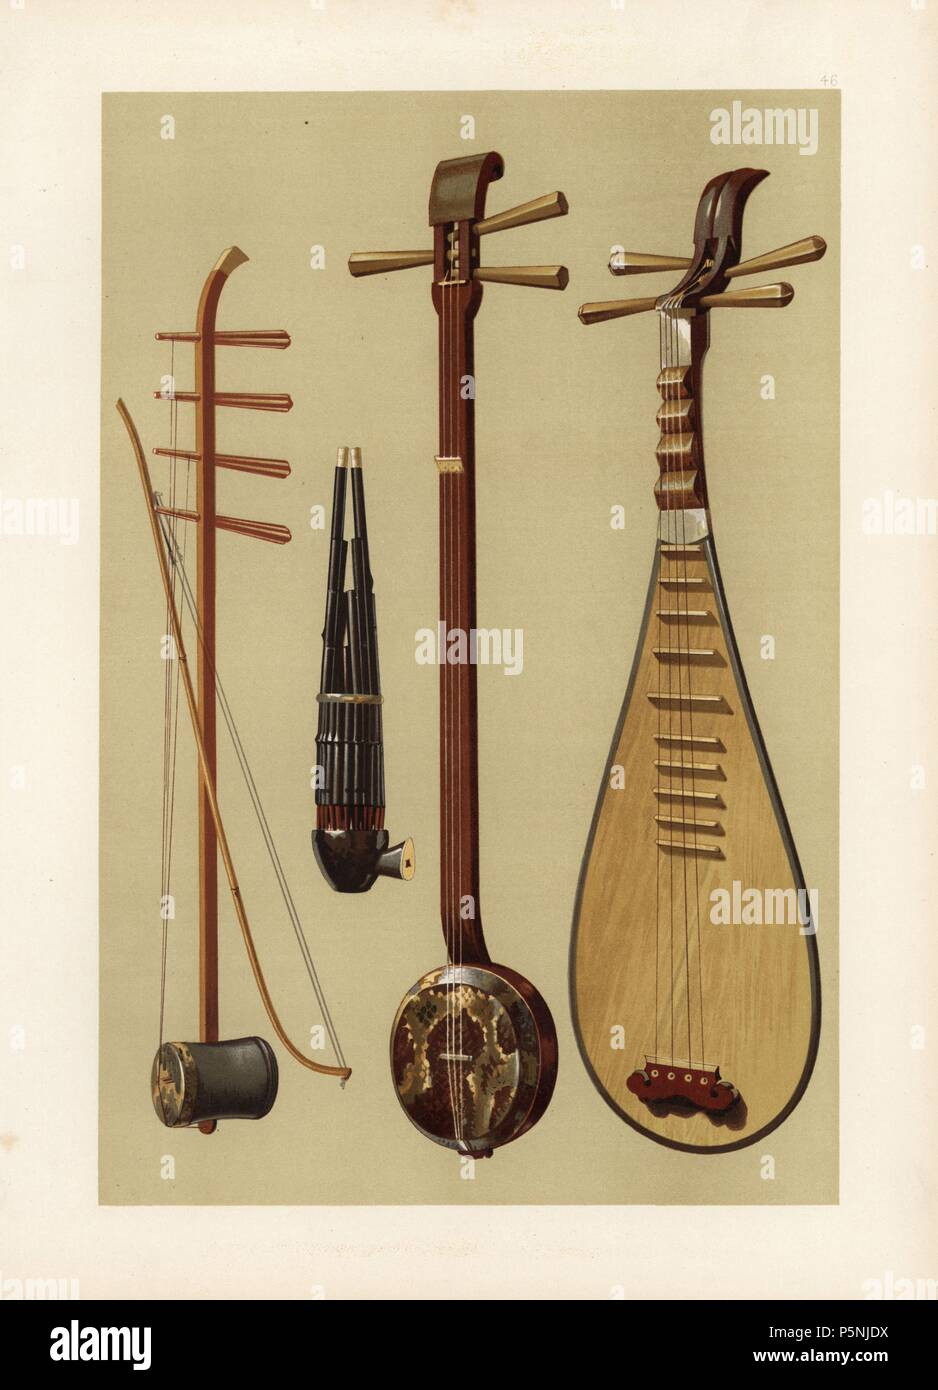 Chinese strings and woodwind: Huch'in (erhu or fiddle), Sheng (reed mouth organ), San-hsien (three-string banjo) and Pipa (balloon guitar or lute). Chromolithograph from an illustration by William Gibb from A.J. Hipkins' 'Musical Instruments, Historic, Rare and Unique,' Adam and Charles Black, Edinburgh, 1888. Alfred James Hipkins (1826-1903) was an English musicologist who specialized in the history of the pianoforte and other instruments. William Gibb was a master illustrator and chromolithographer and illustrated 'The Royal House of Stuart' (1890), 'Naval and Military Trophies' (1896), and  - Stock Image